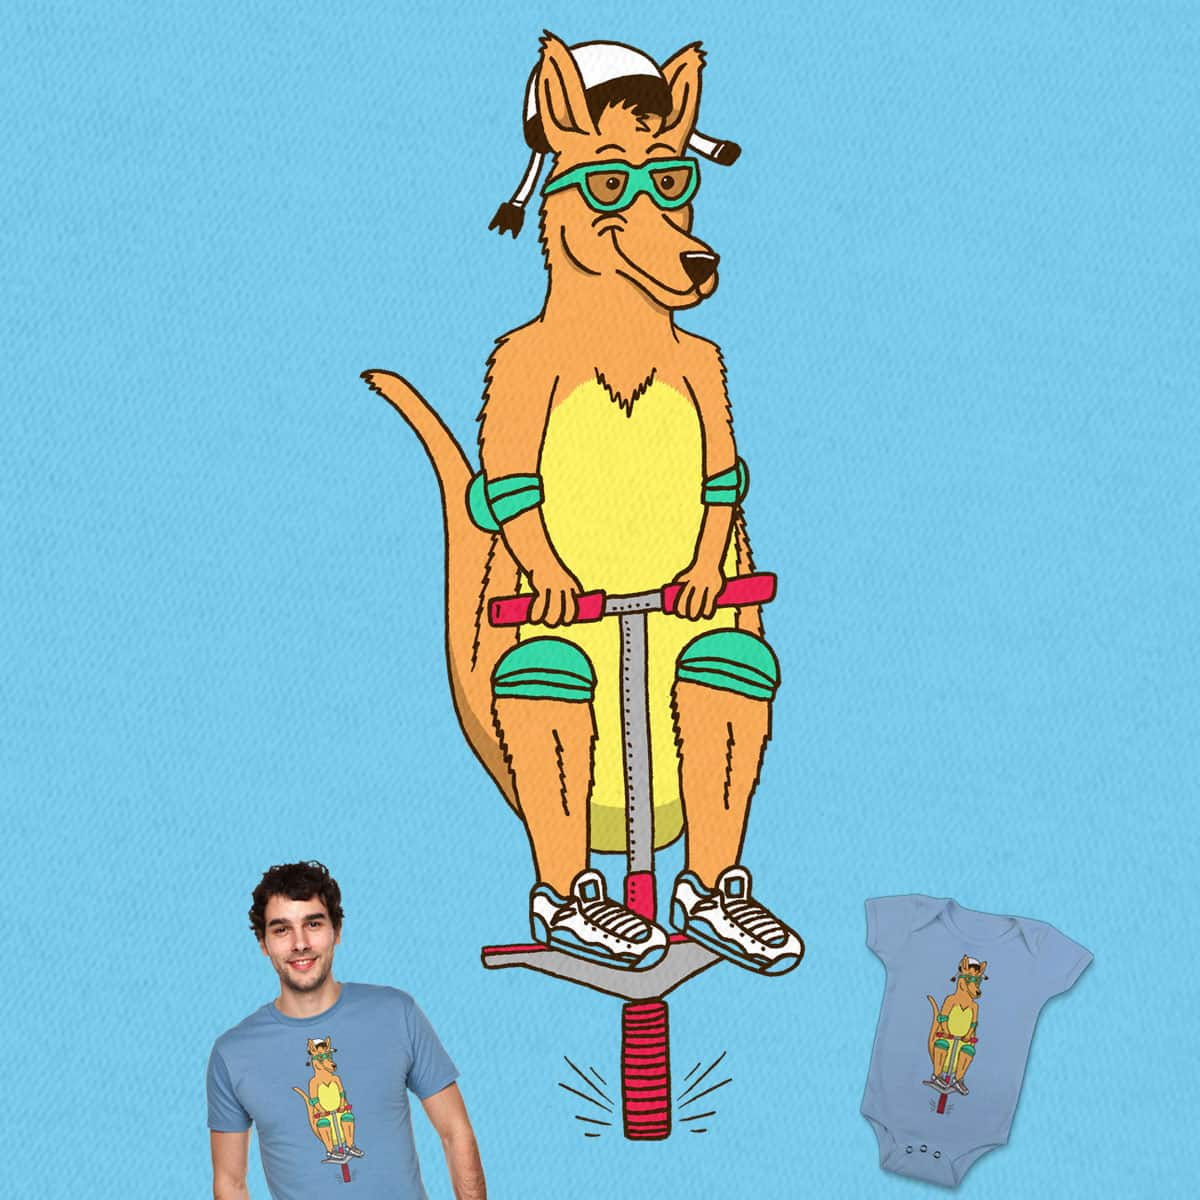 In Training by SteveOramA and rossmat8 on Threadless